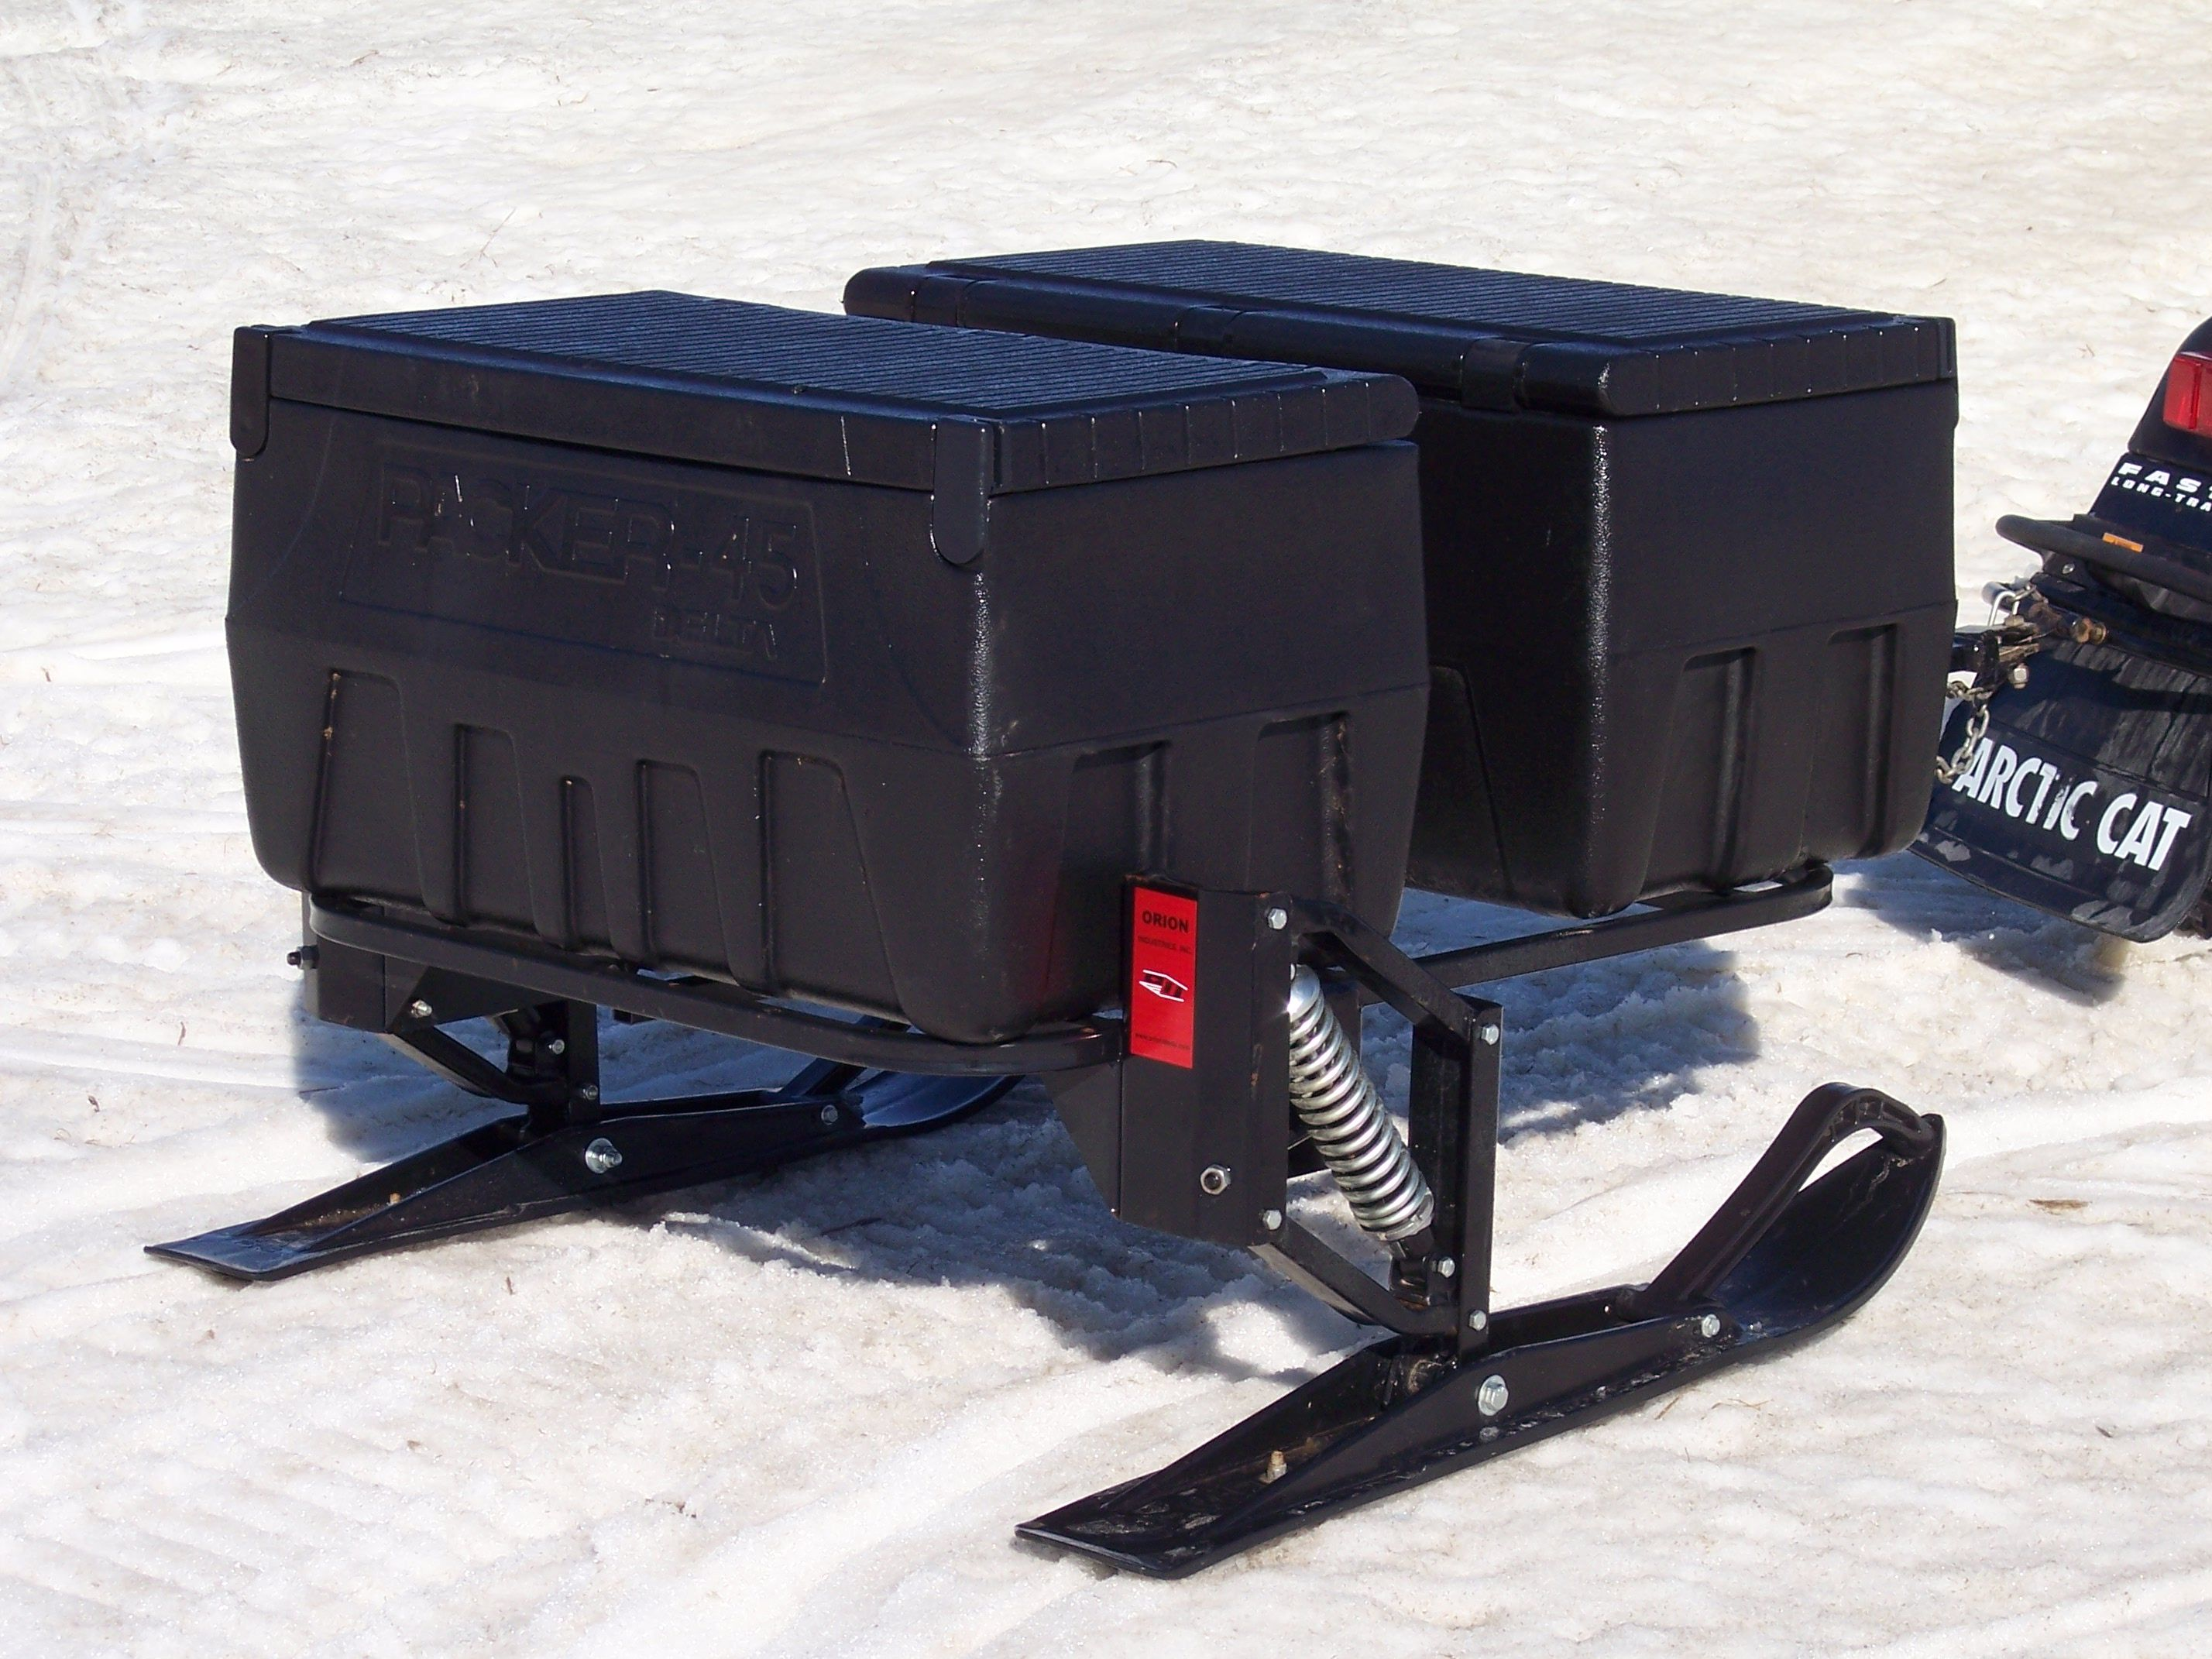 Orion Sleds Amp Trailers Llc Tote Sled Ice Fishing Shack